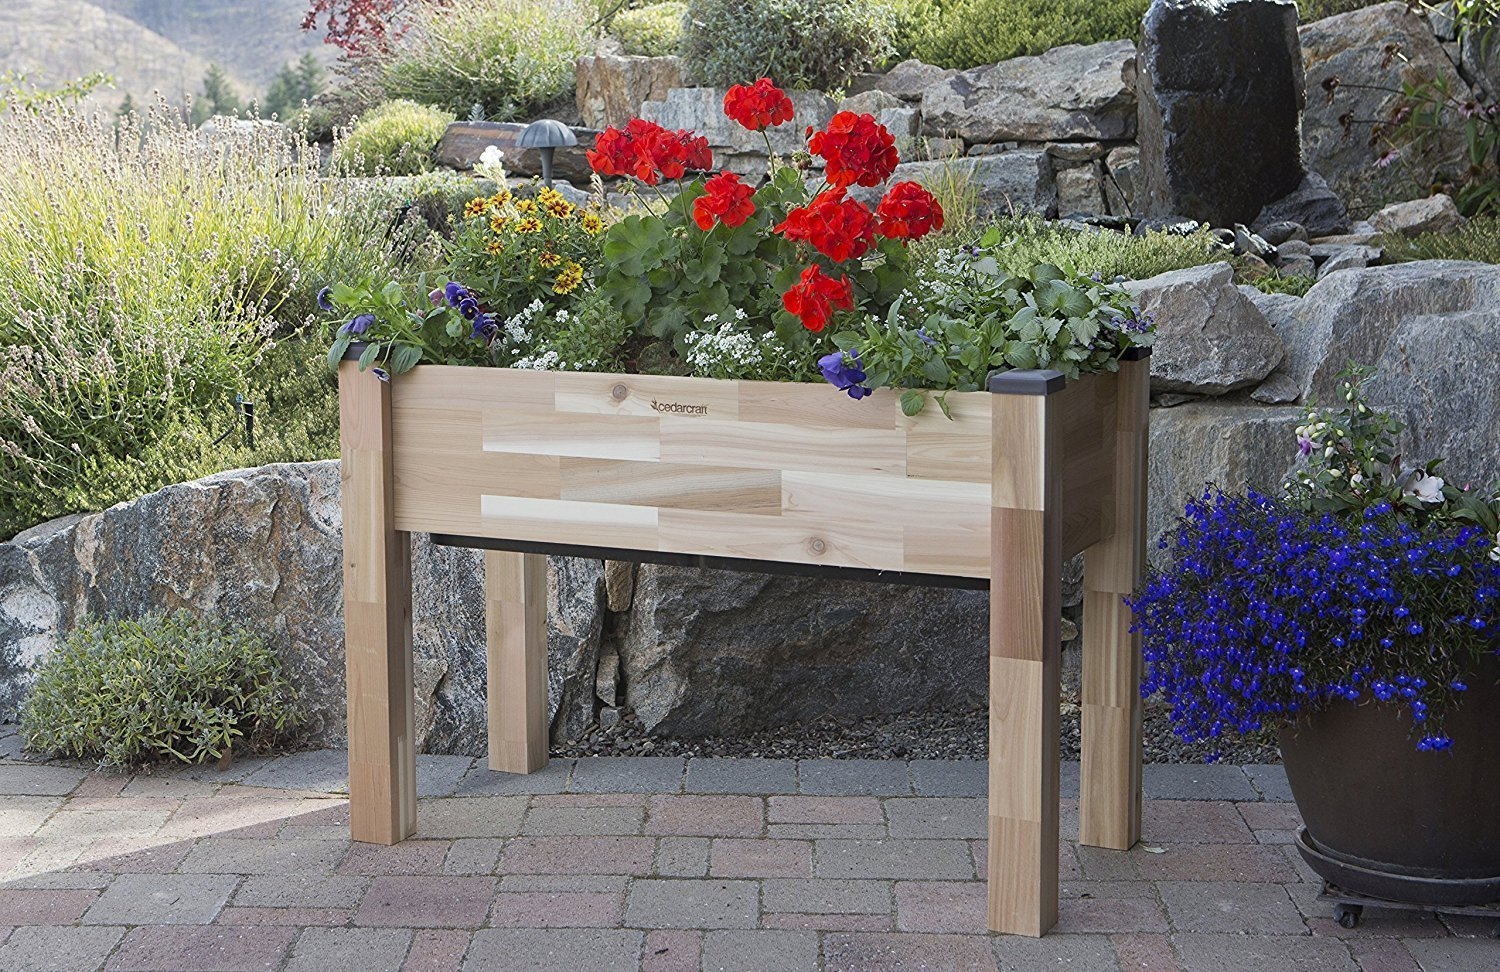 CedarCraft Self-Watering Elevated Cedar Planter (23 X 49 X 30) - Grow Fresh Vegetables, Herb Gardens, Flowers & Succulents. Raised Garden Bed for a Deck, Patio or Yard Gardening. No Tools Required.